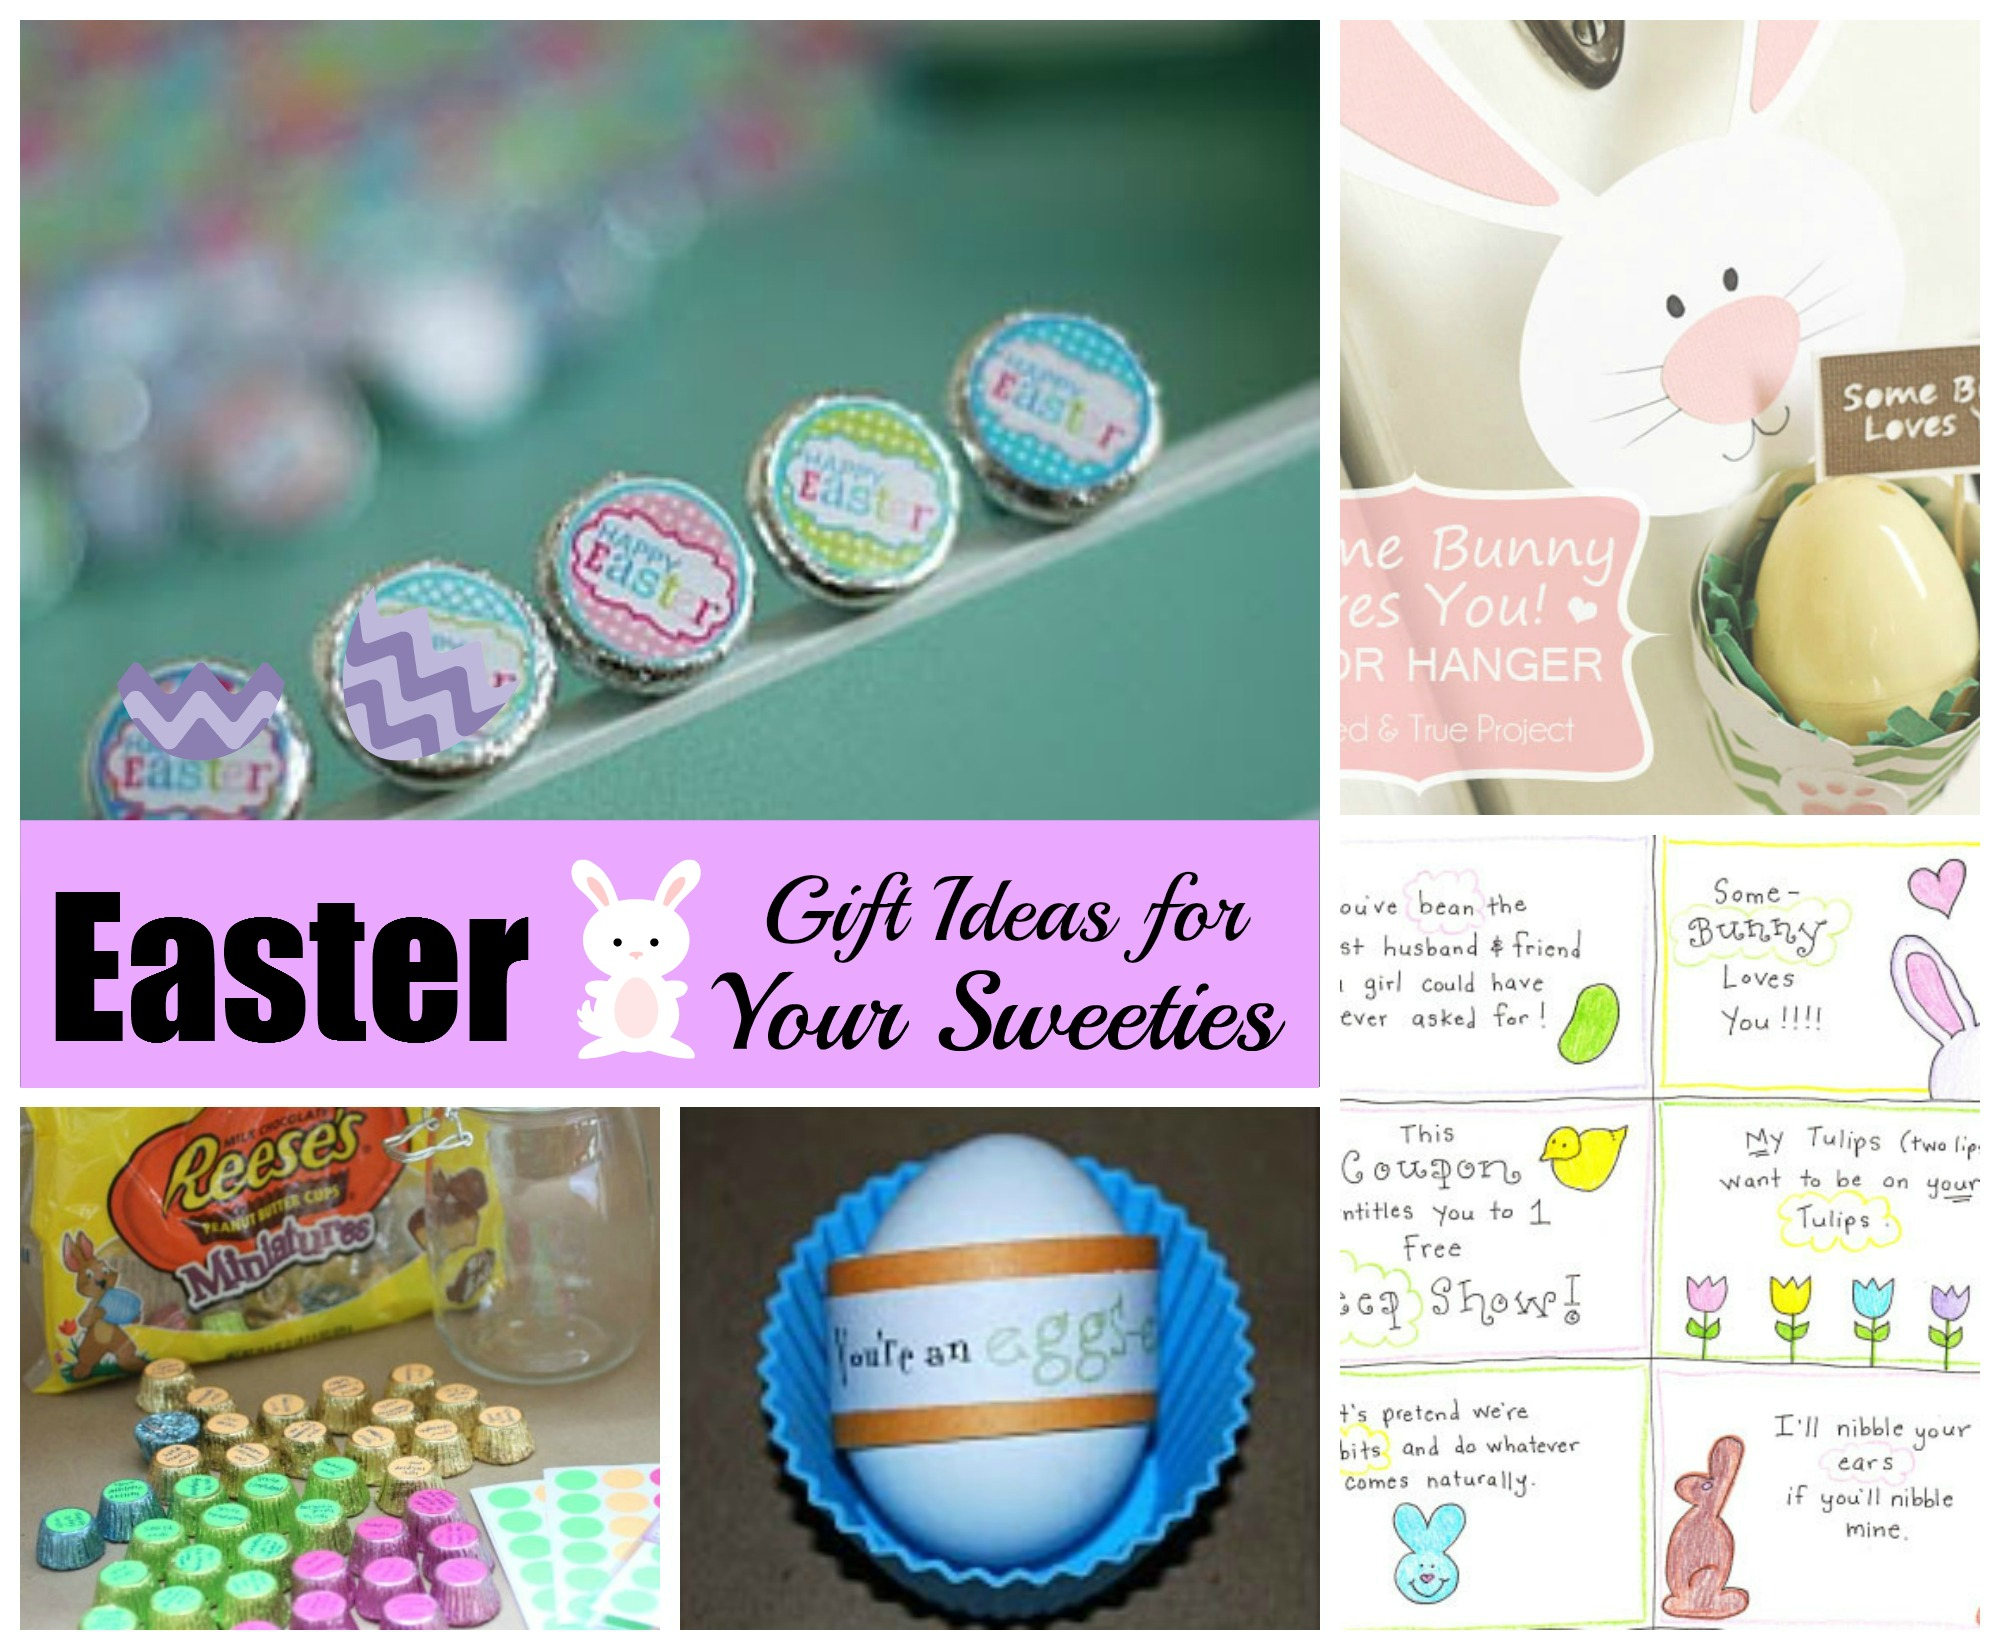 Easter diy gift ideas for your sweeties spouse and kids easter diy gifts for your sweeties negle Image collections